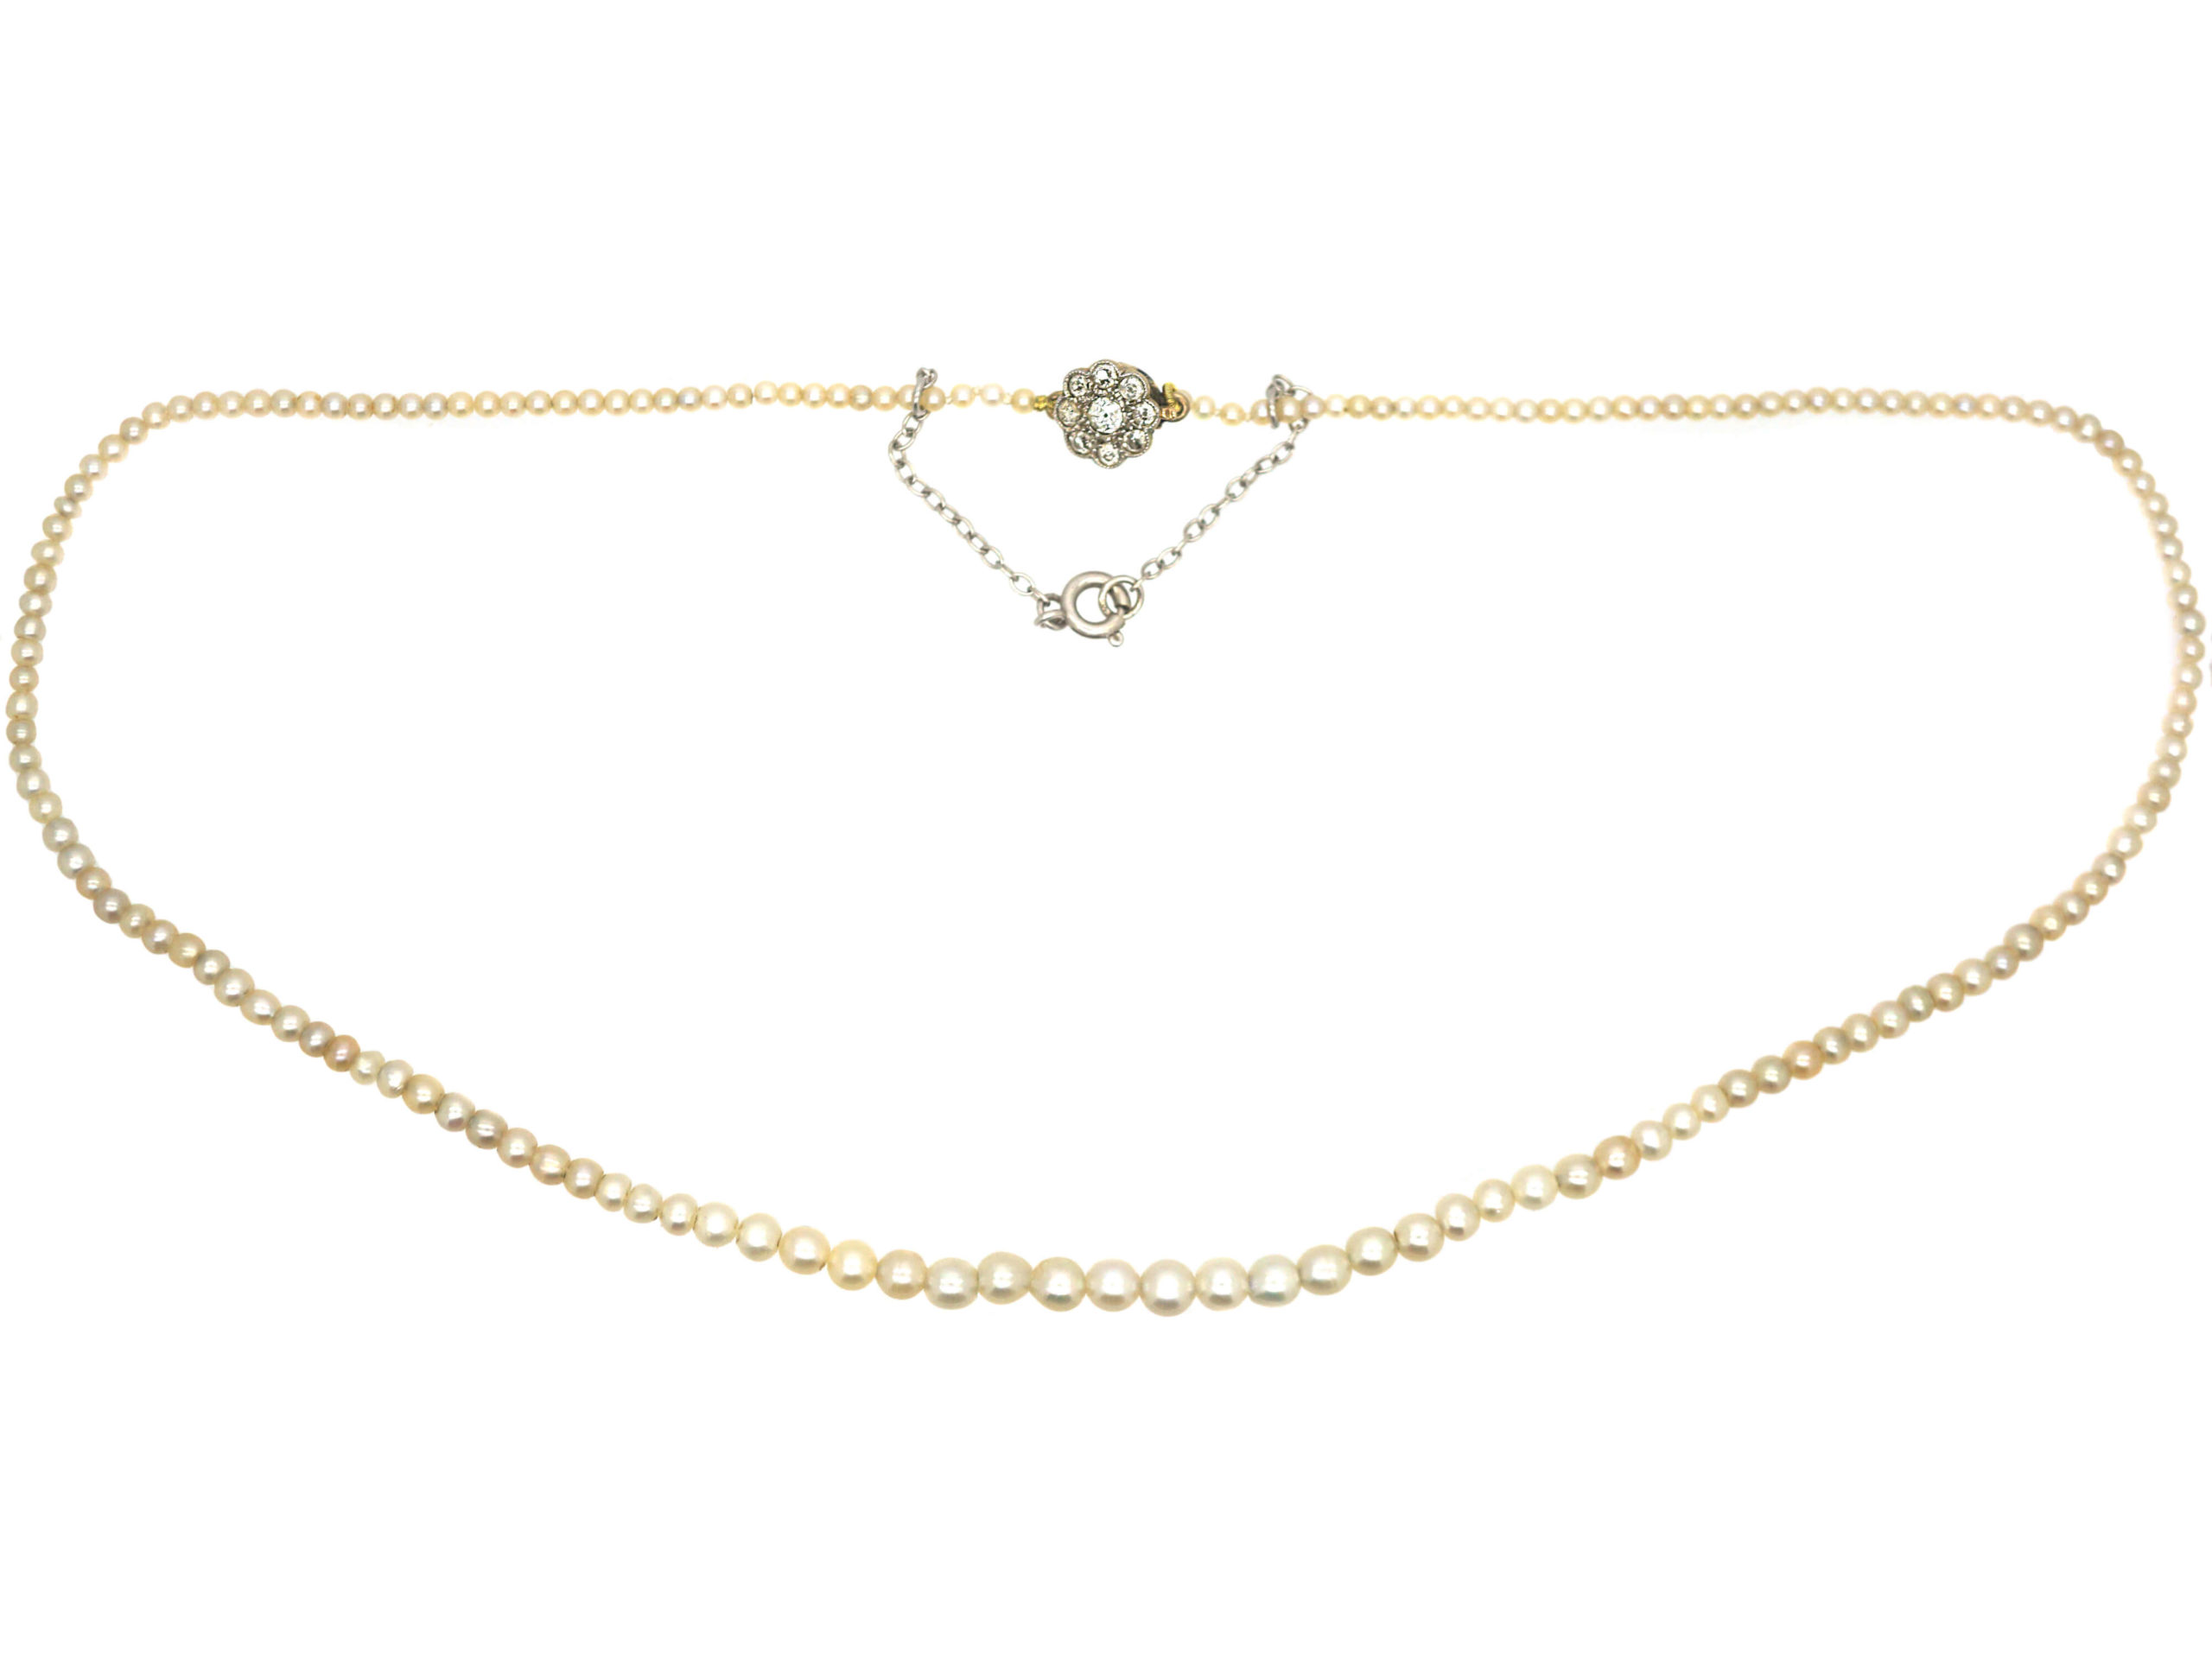 Edwardian Natural Pearl Necklace with Diamond Set Cluster Clasp